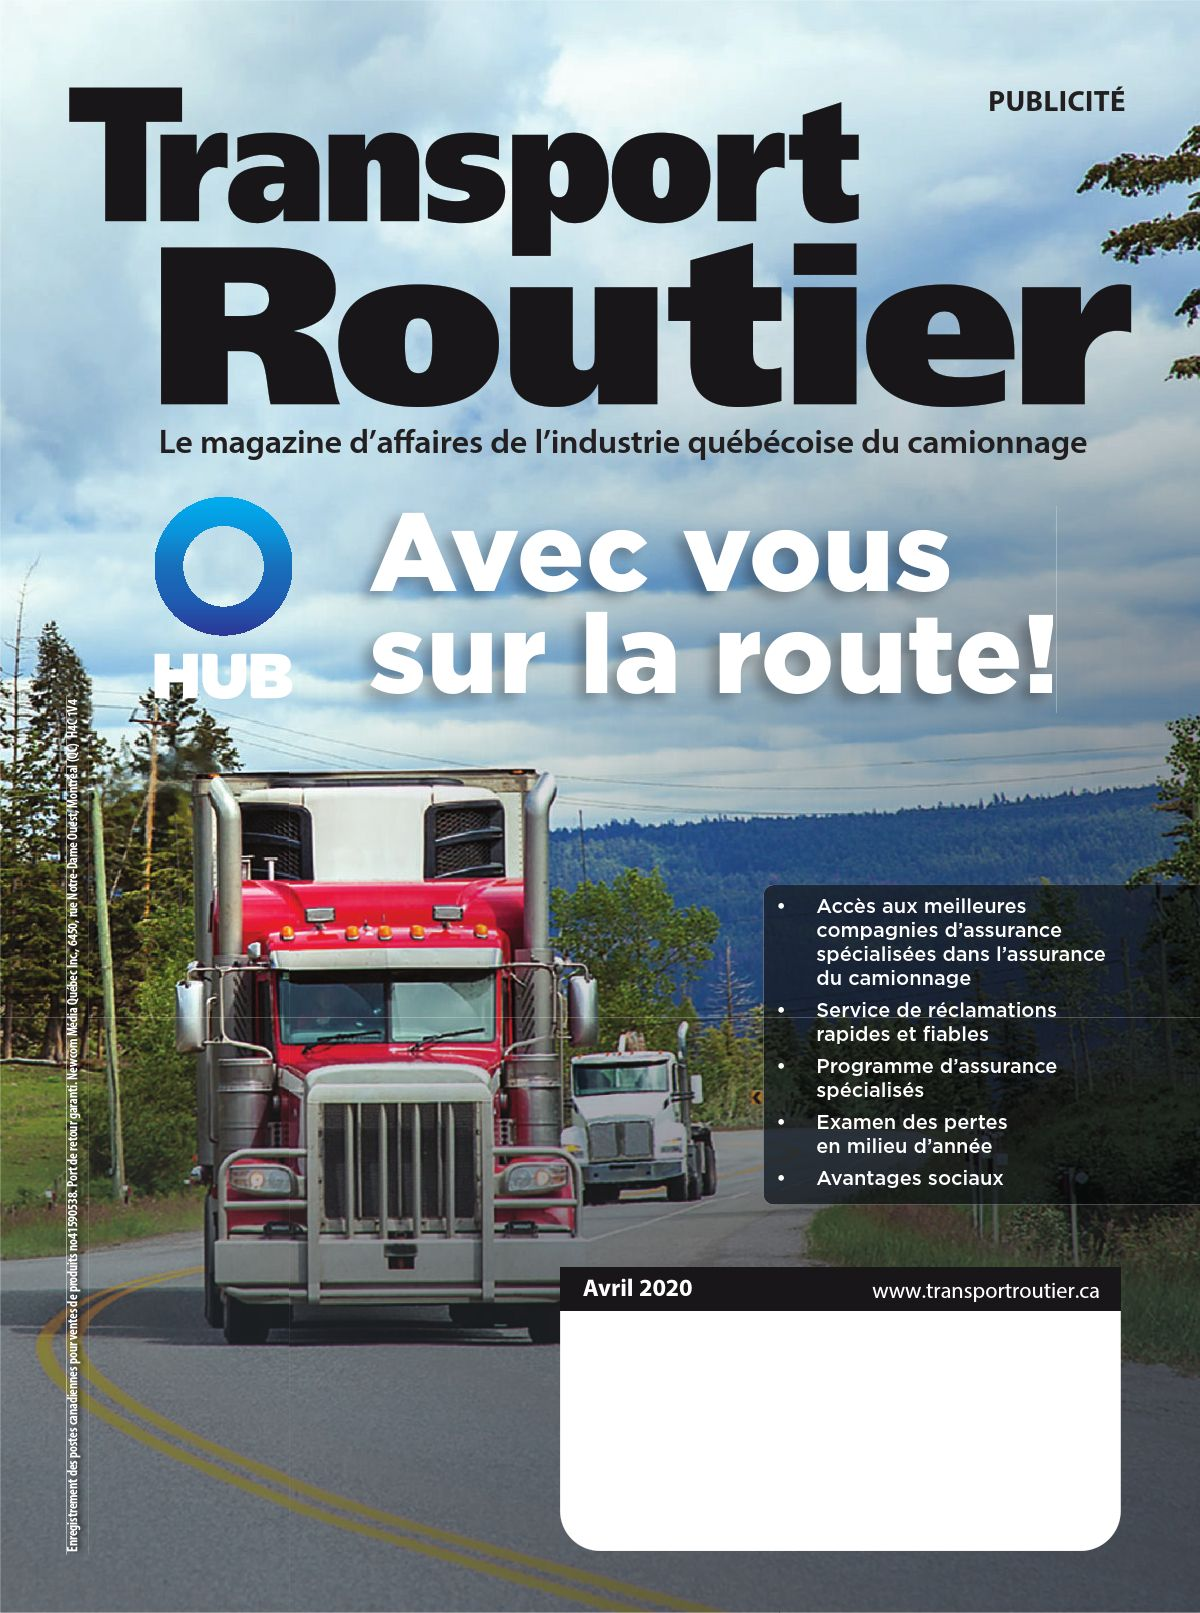 Transport routier – 1 avril 2020